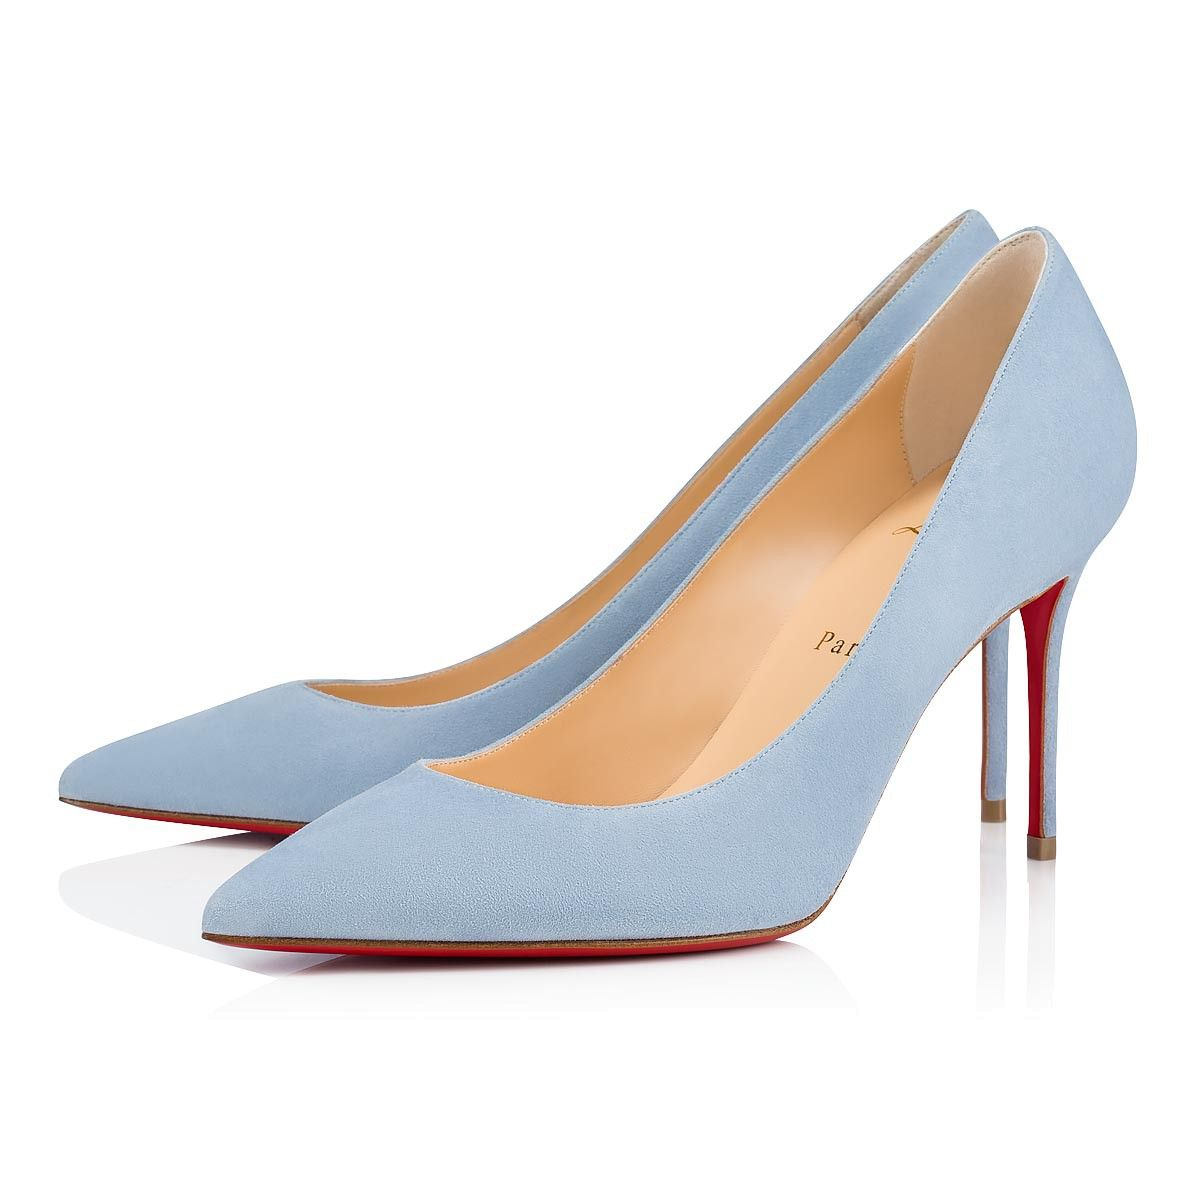 5b5716286f1f Decollete 554 85 Sky Suede - Women Shoes - Christian Louboutin in ...